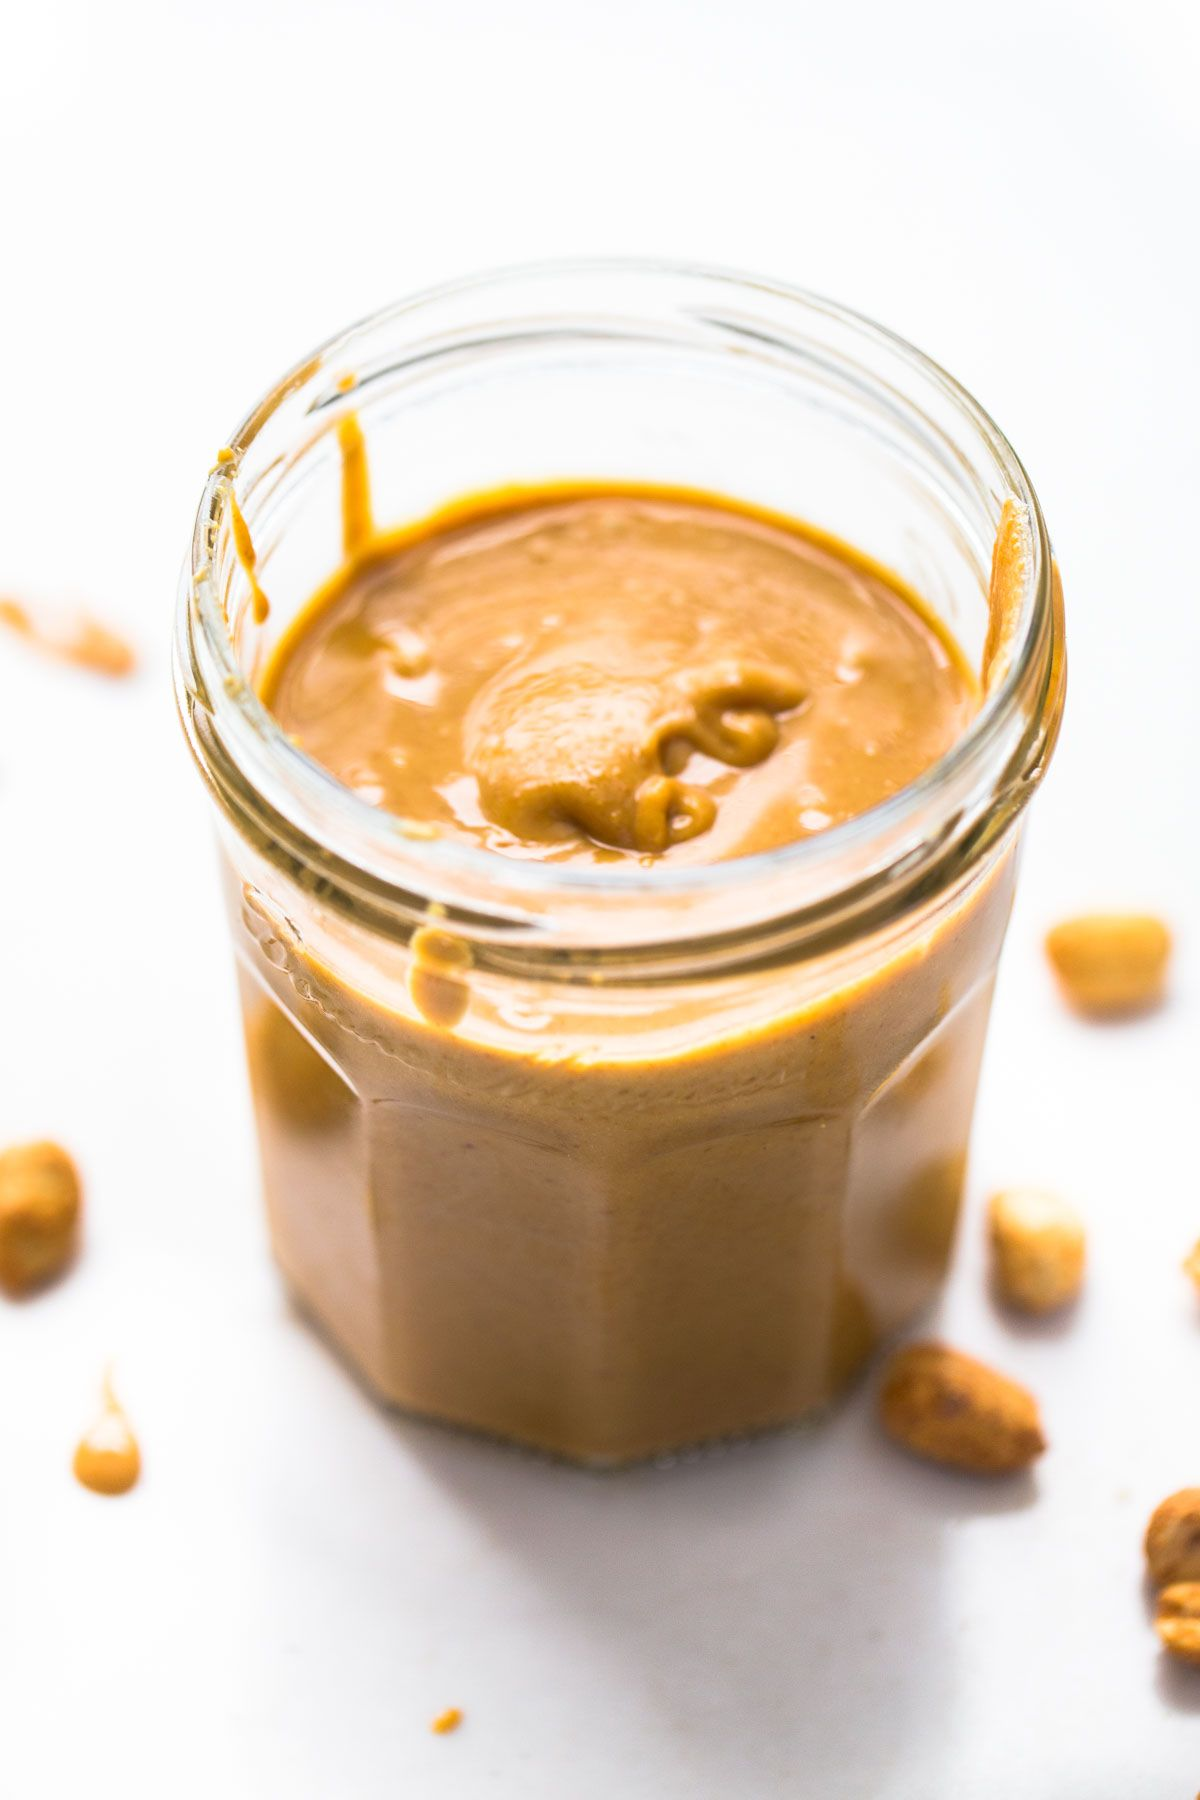 Homemade Peanut Butter recipe - the BEST creamy, melty texture! All you need is peanuts and a food processor.   pinchofyum.com